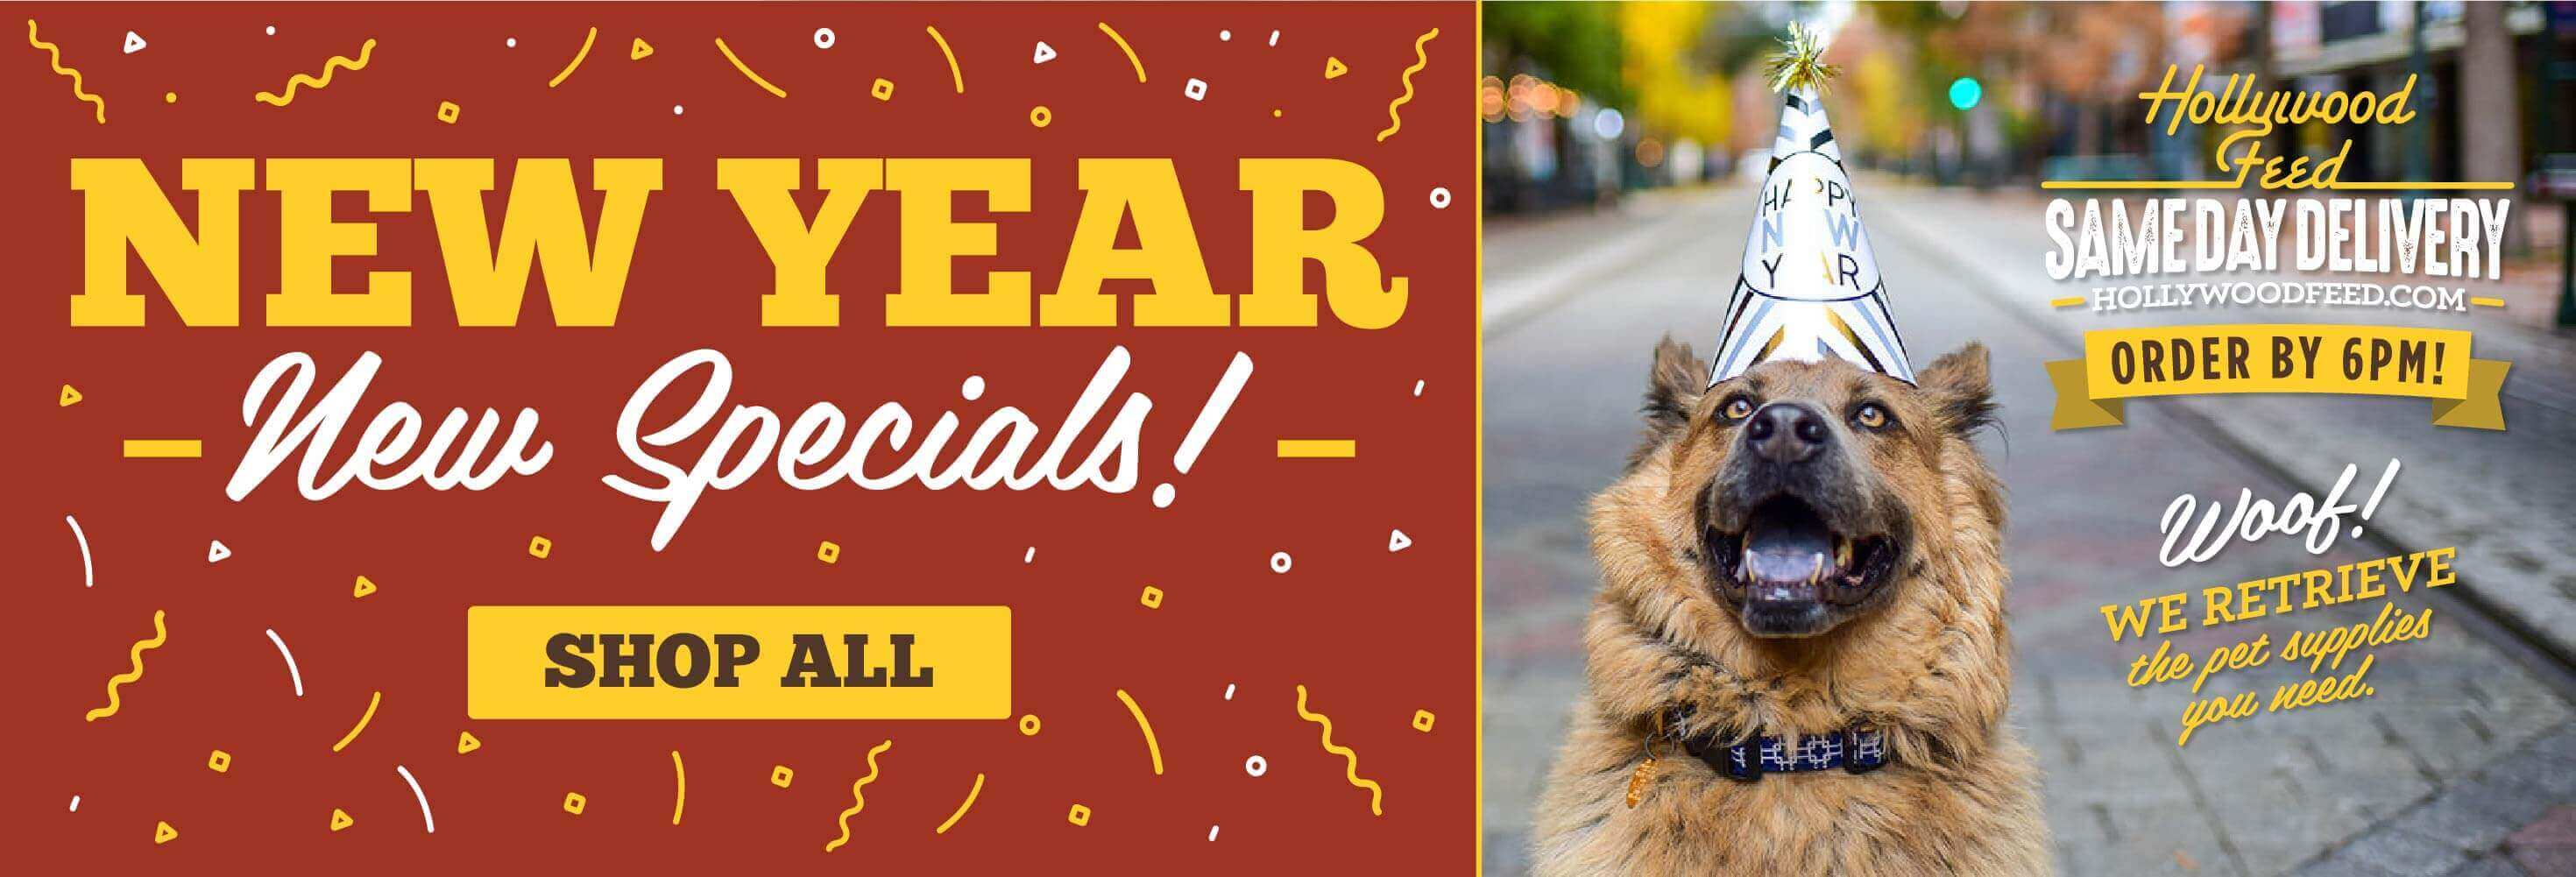 Header Image for January Specials